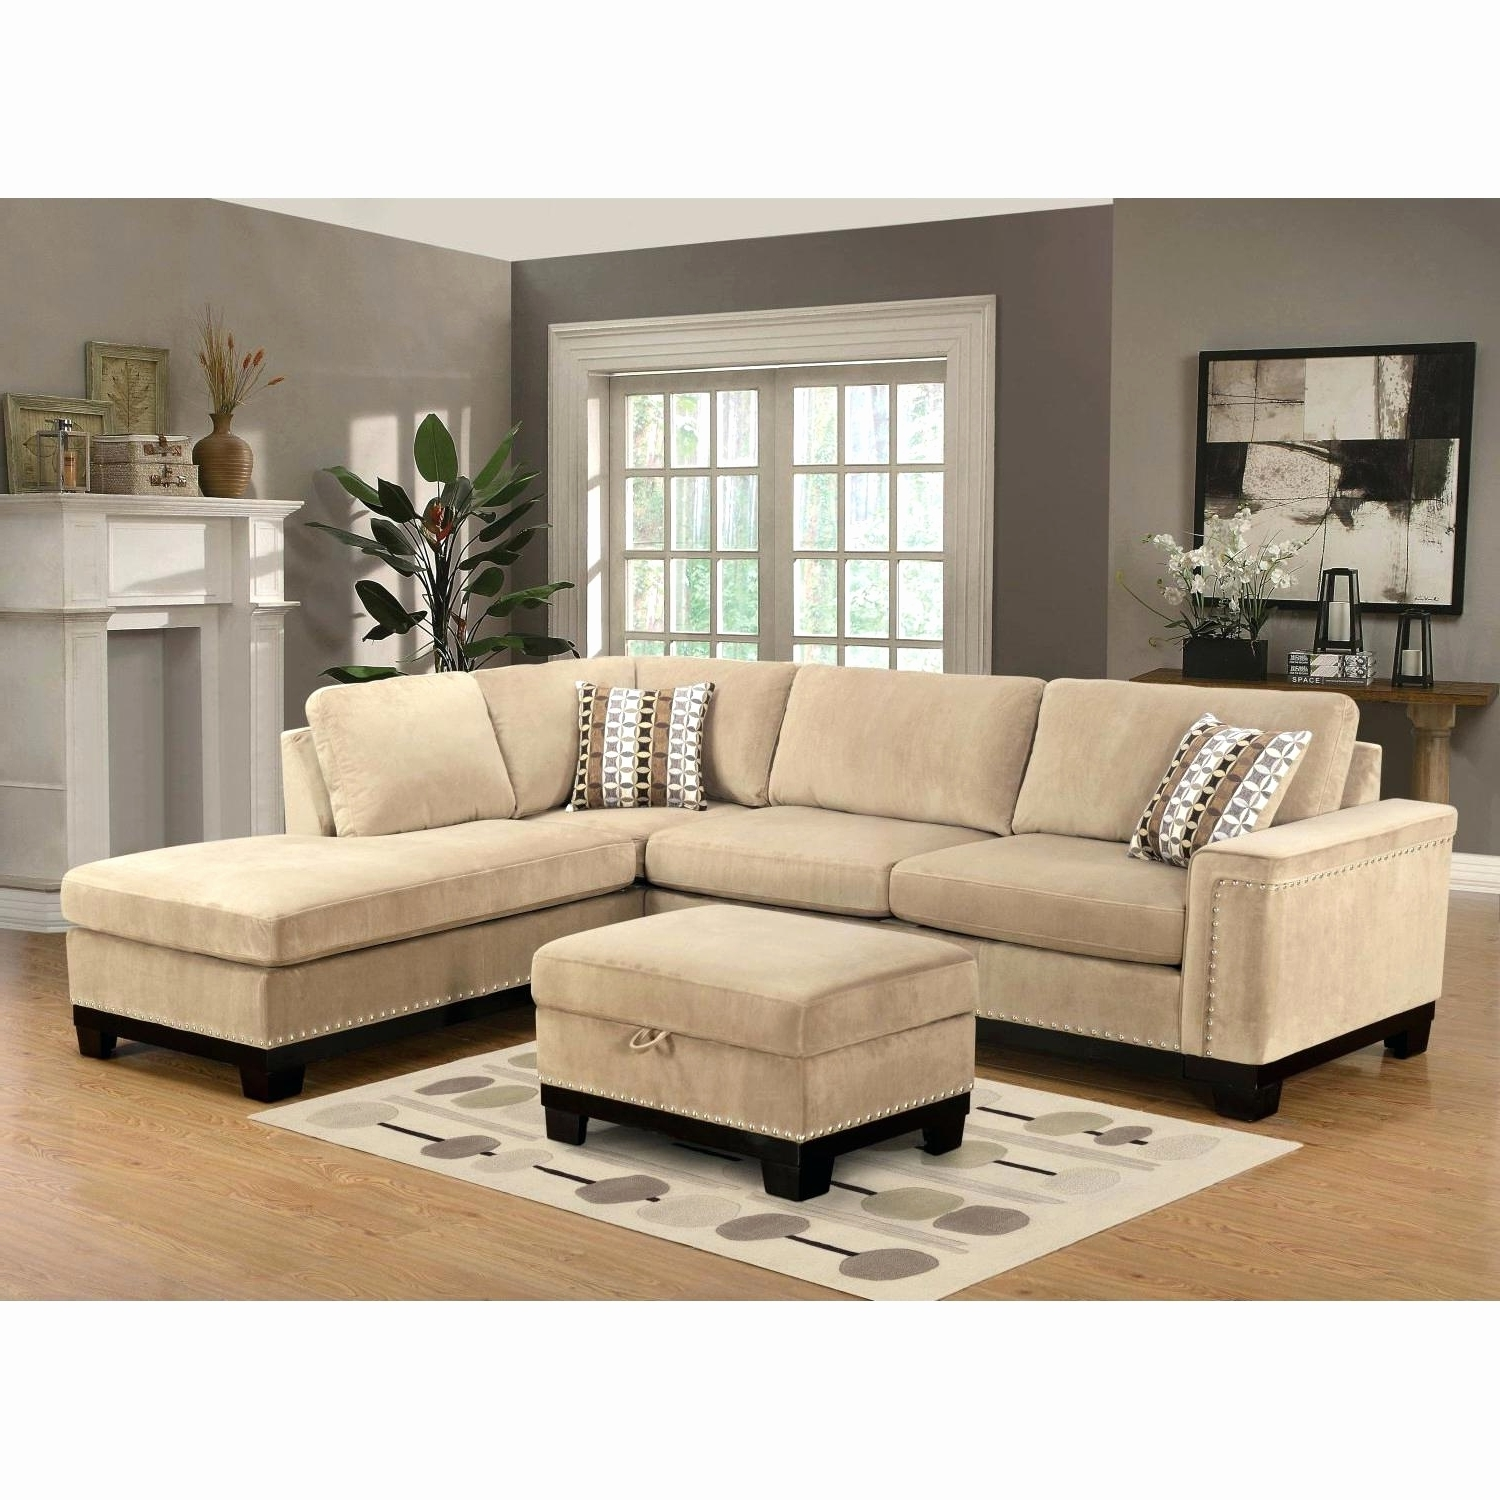 Orange County Ca Sectional Sofas Inside Current Best Orange Sectional Sofa 2018 – Couches And Sofas Ideas (View 12 of 15)